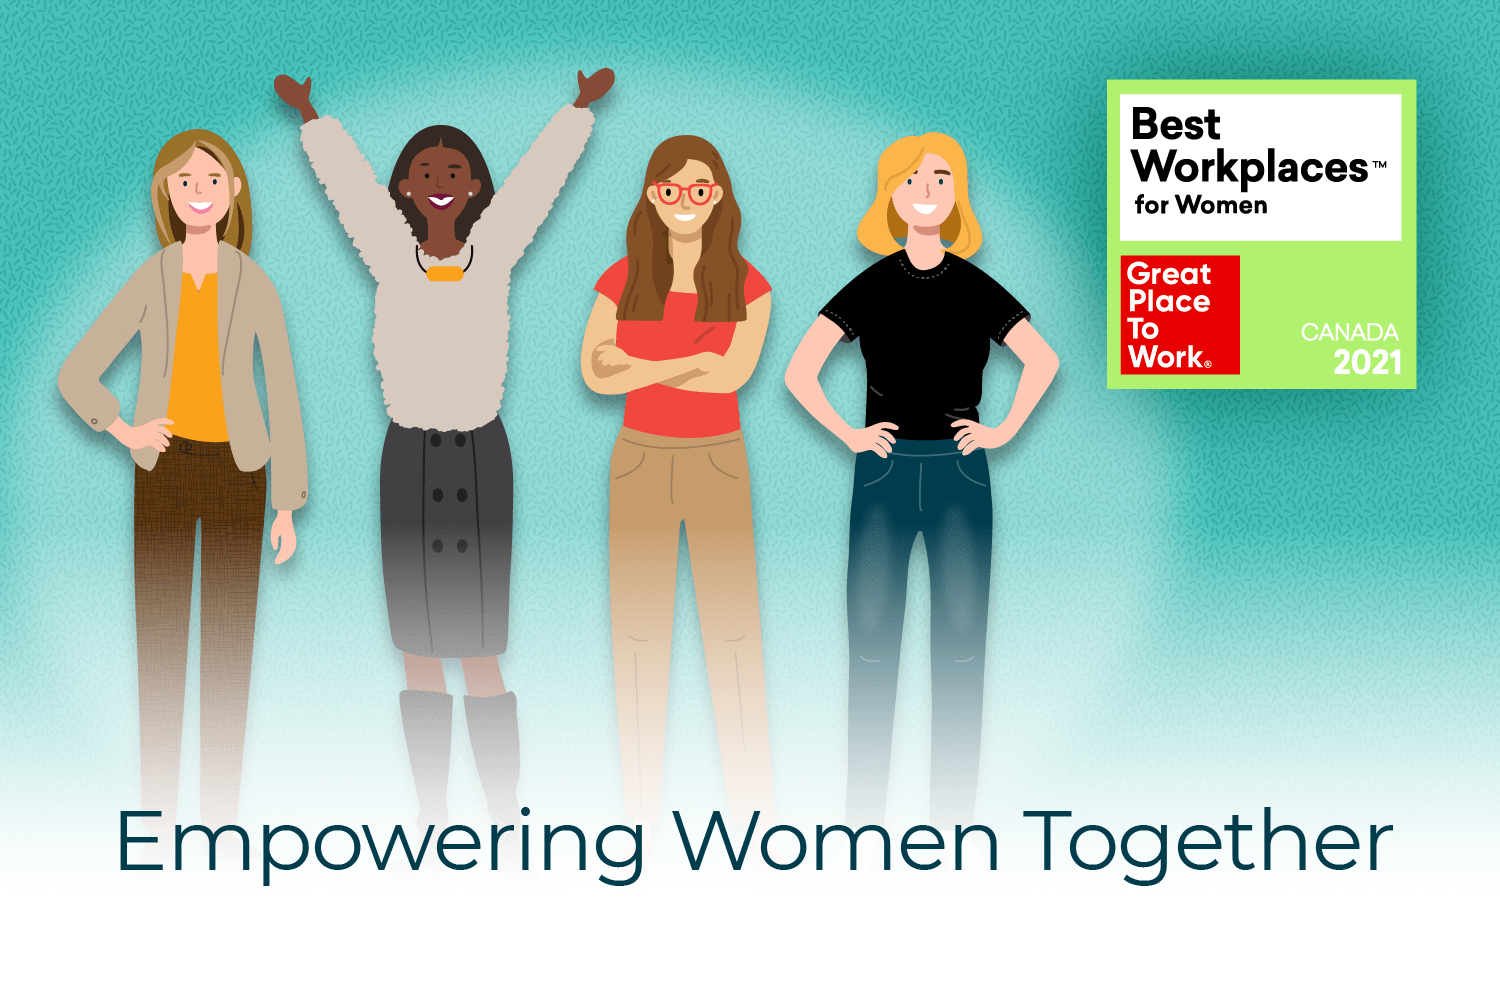 What it Means to Work at a Best Workplace for Women